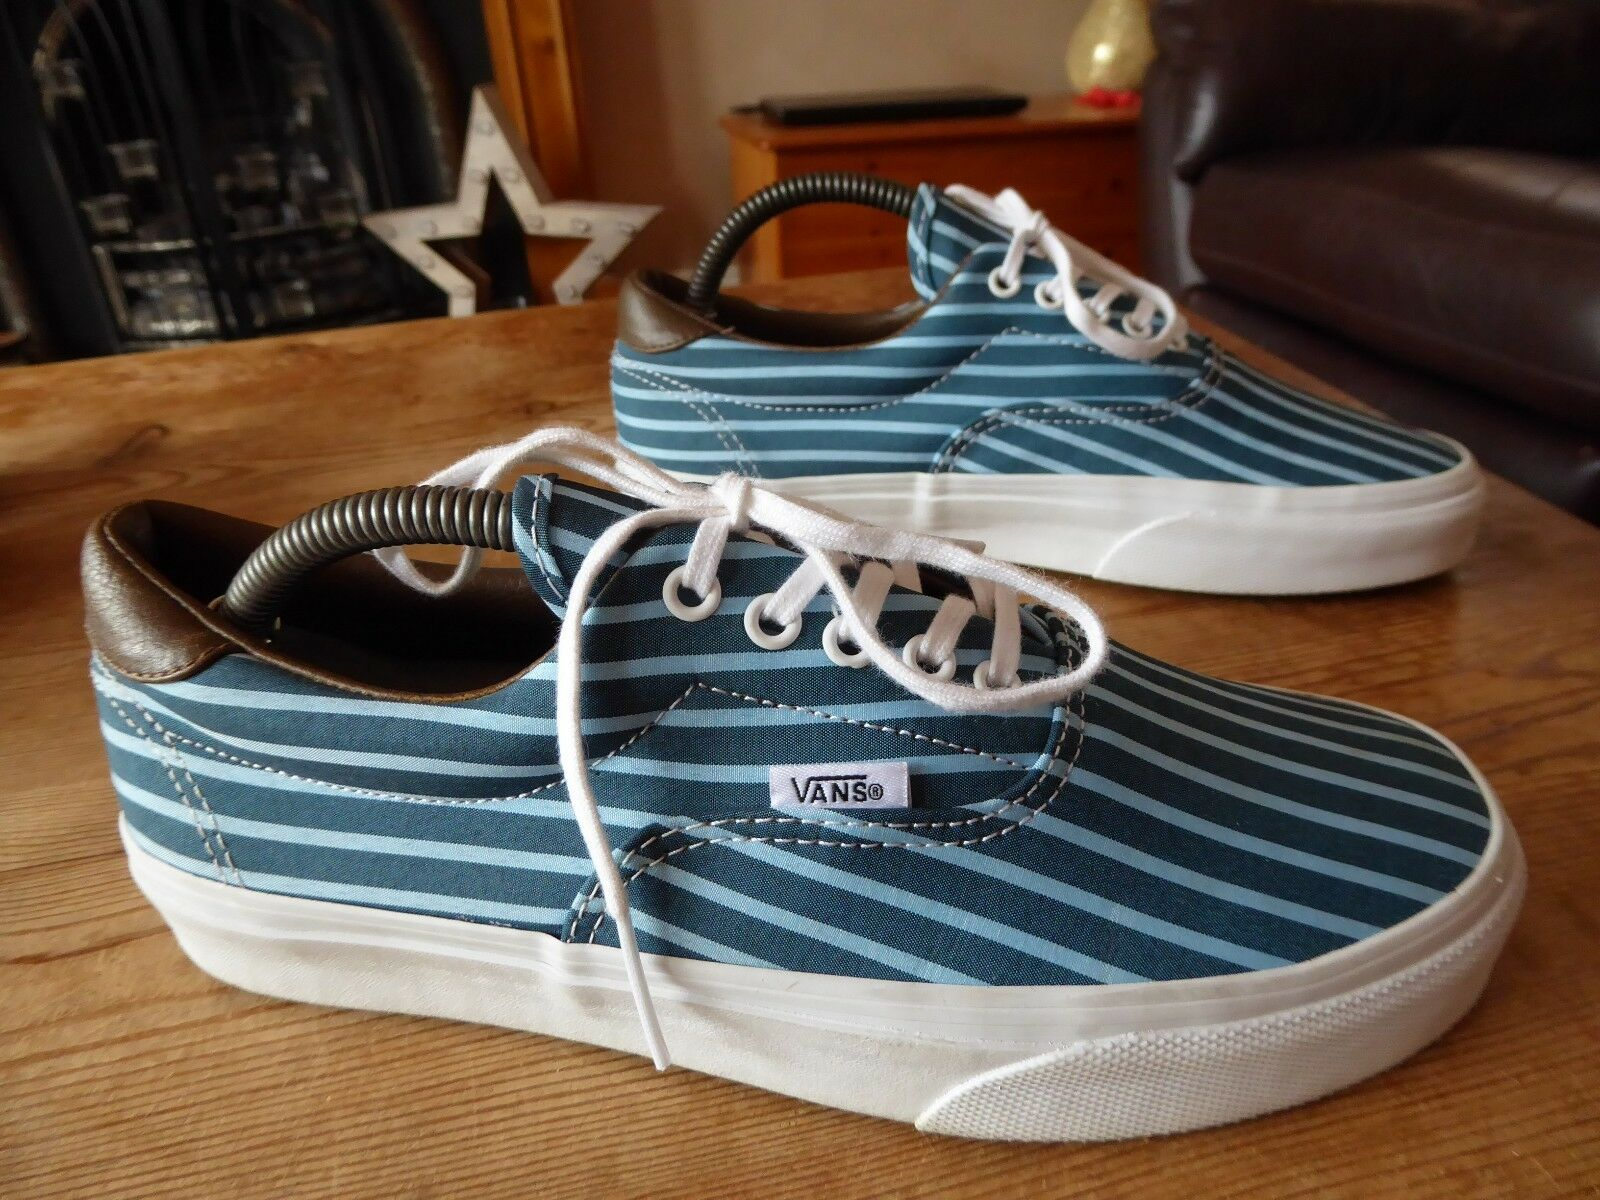 Mens womens VANS trainers - size uk 6 great condition